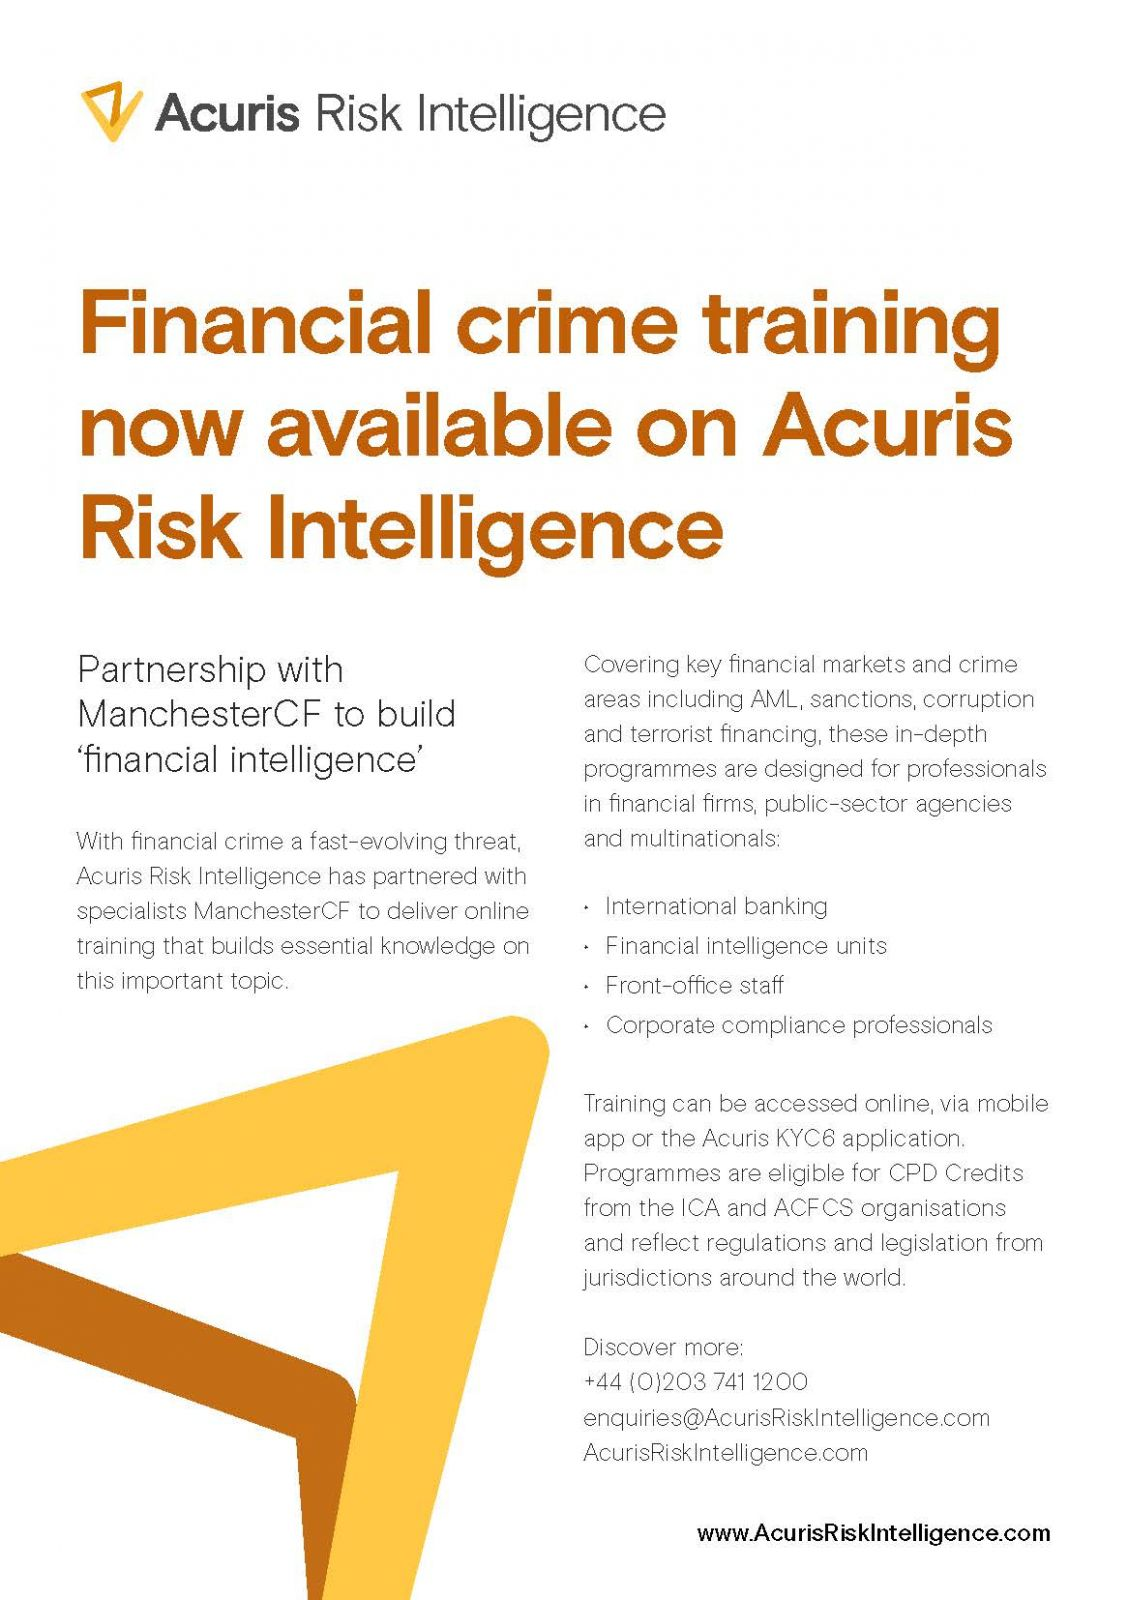 Financial crime training now available on Acuris Risk